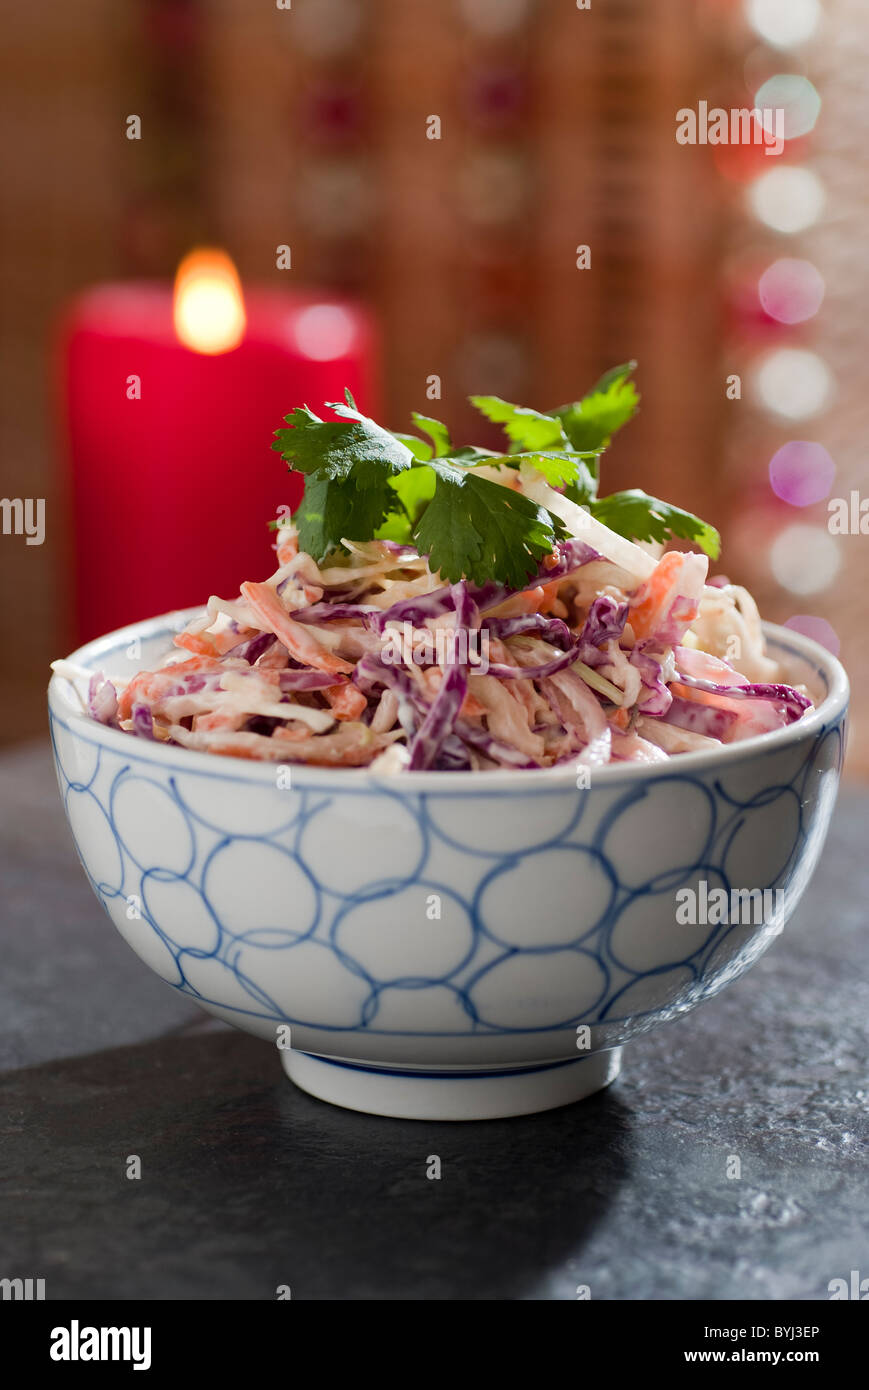 Tangy red and white coleslaw - Stock Image